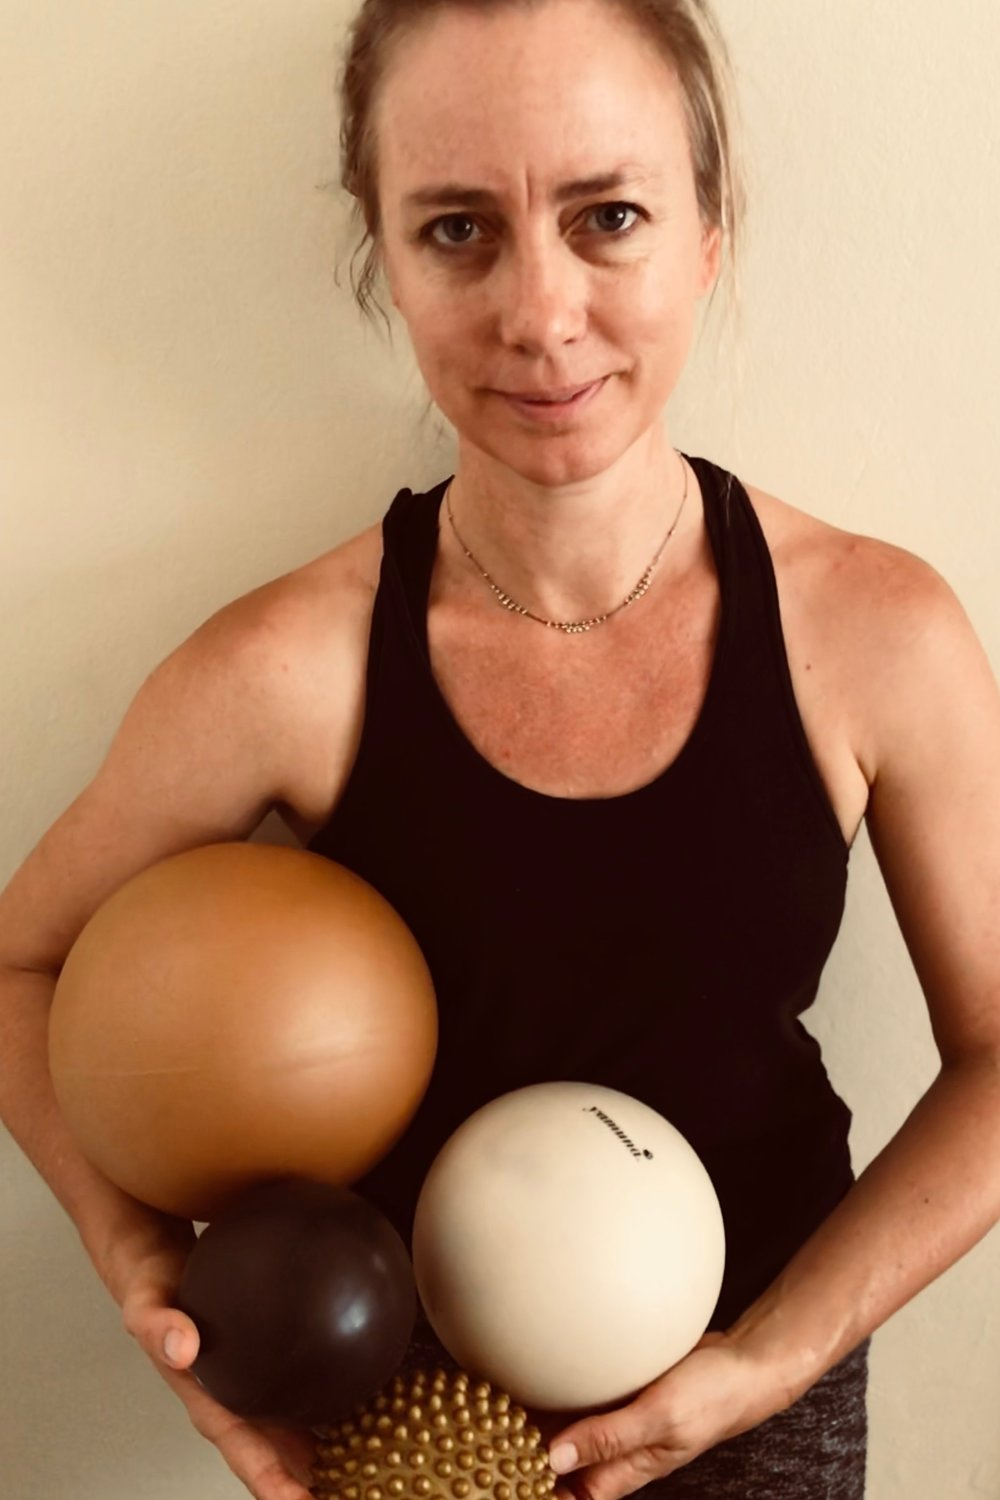 The balls - apply traction that frees up connective tissue, reeducates muscles, stimulates bones, and leads to fully releasing negative holding patterns in the body.